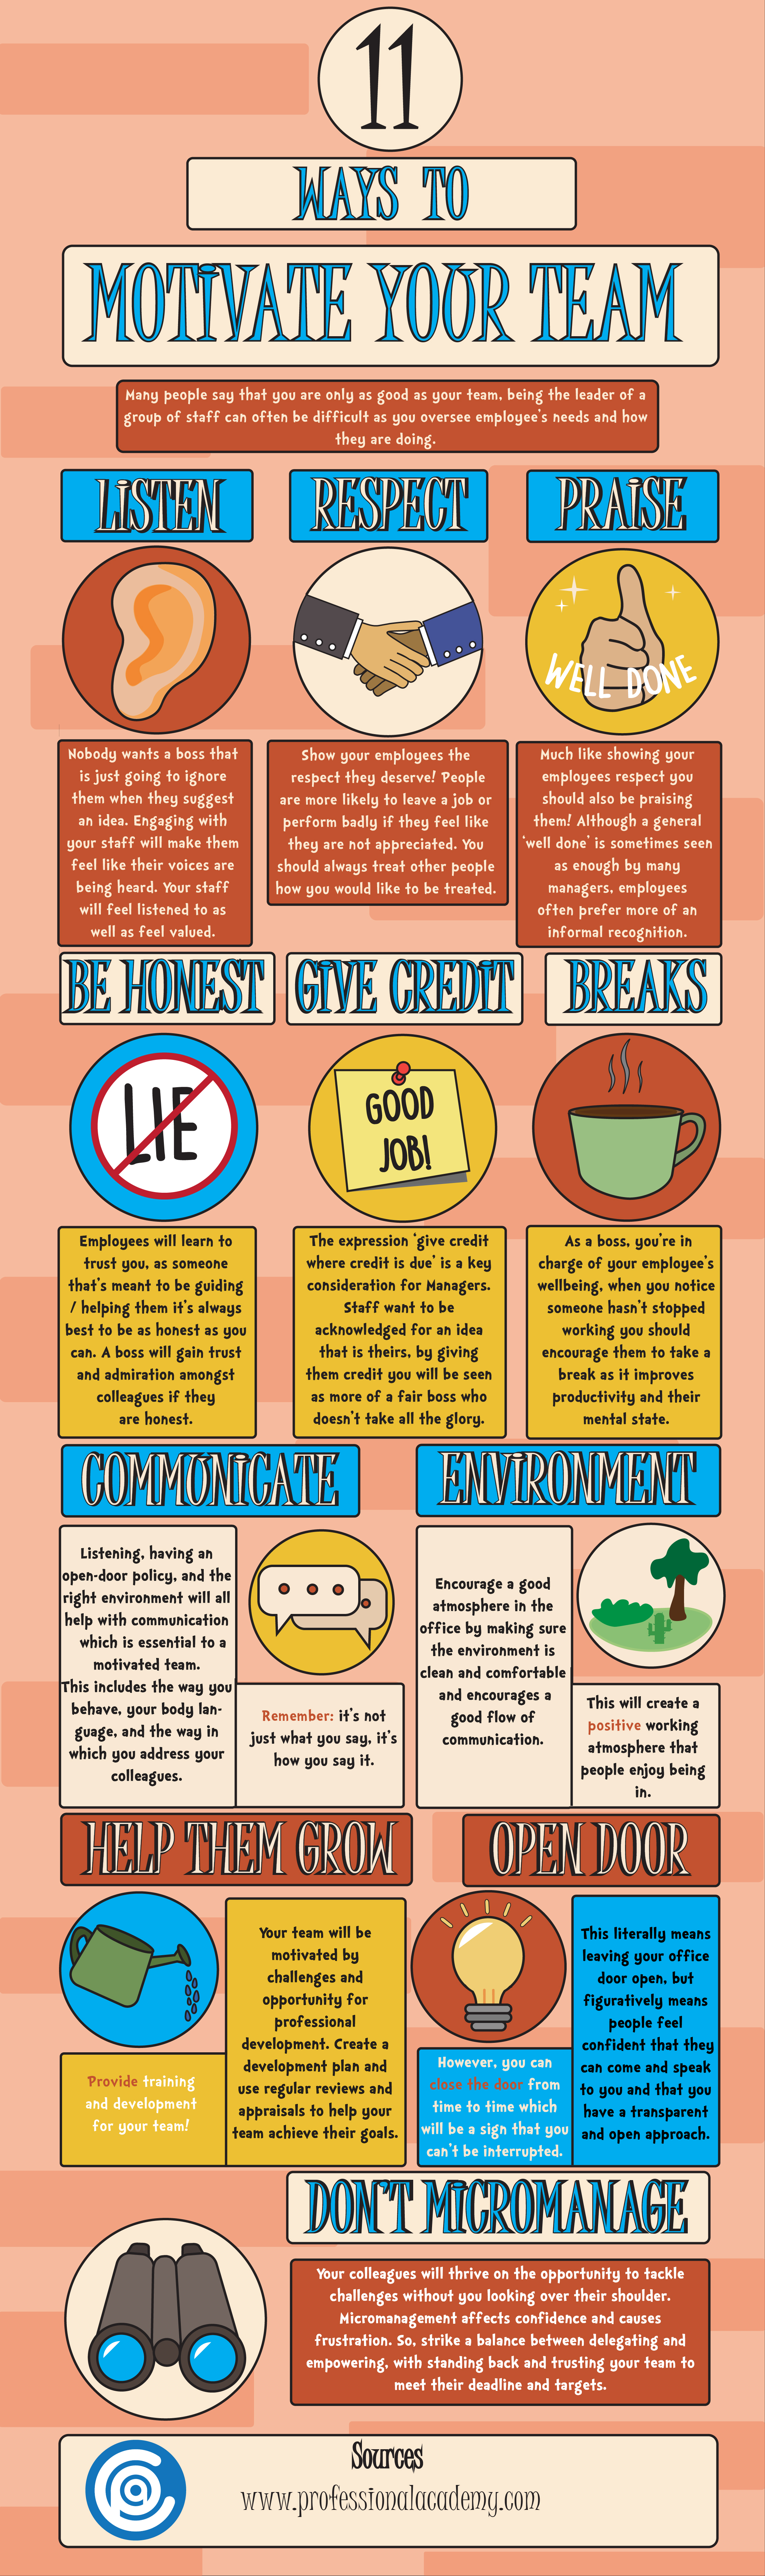 11 Ways to Motivate your Team - Infographic